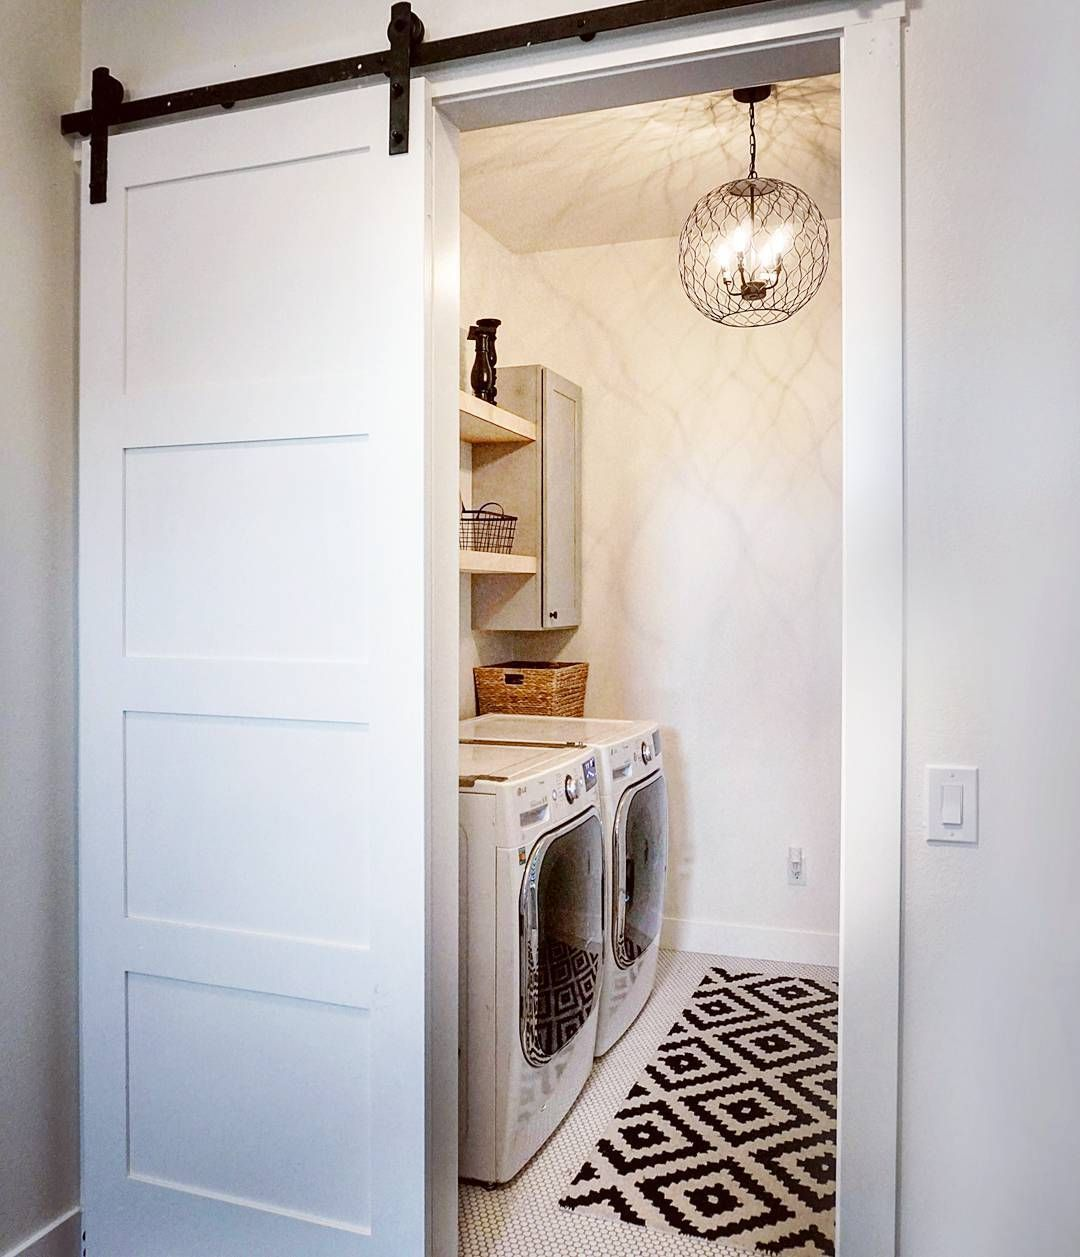 Cool 35 Inspiring Small Laundry Room Design Ideas Https://homeylife.com/